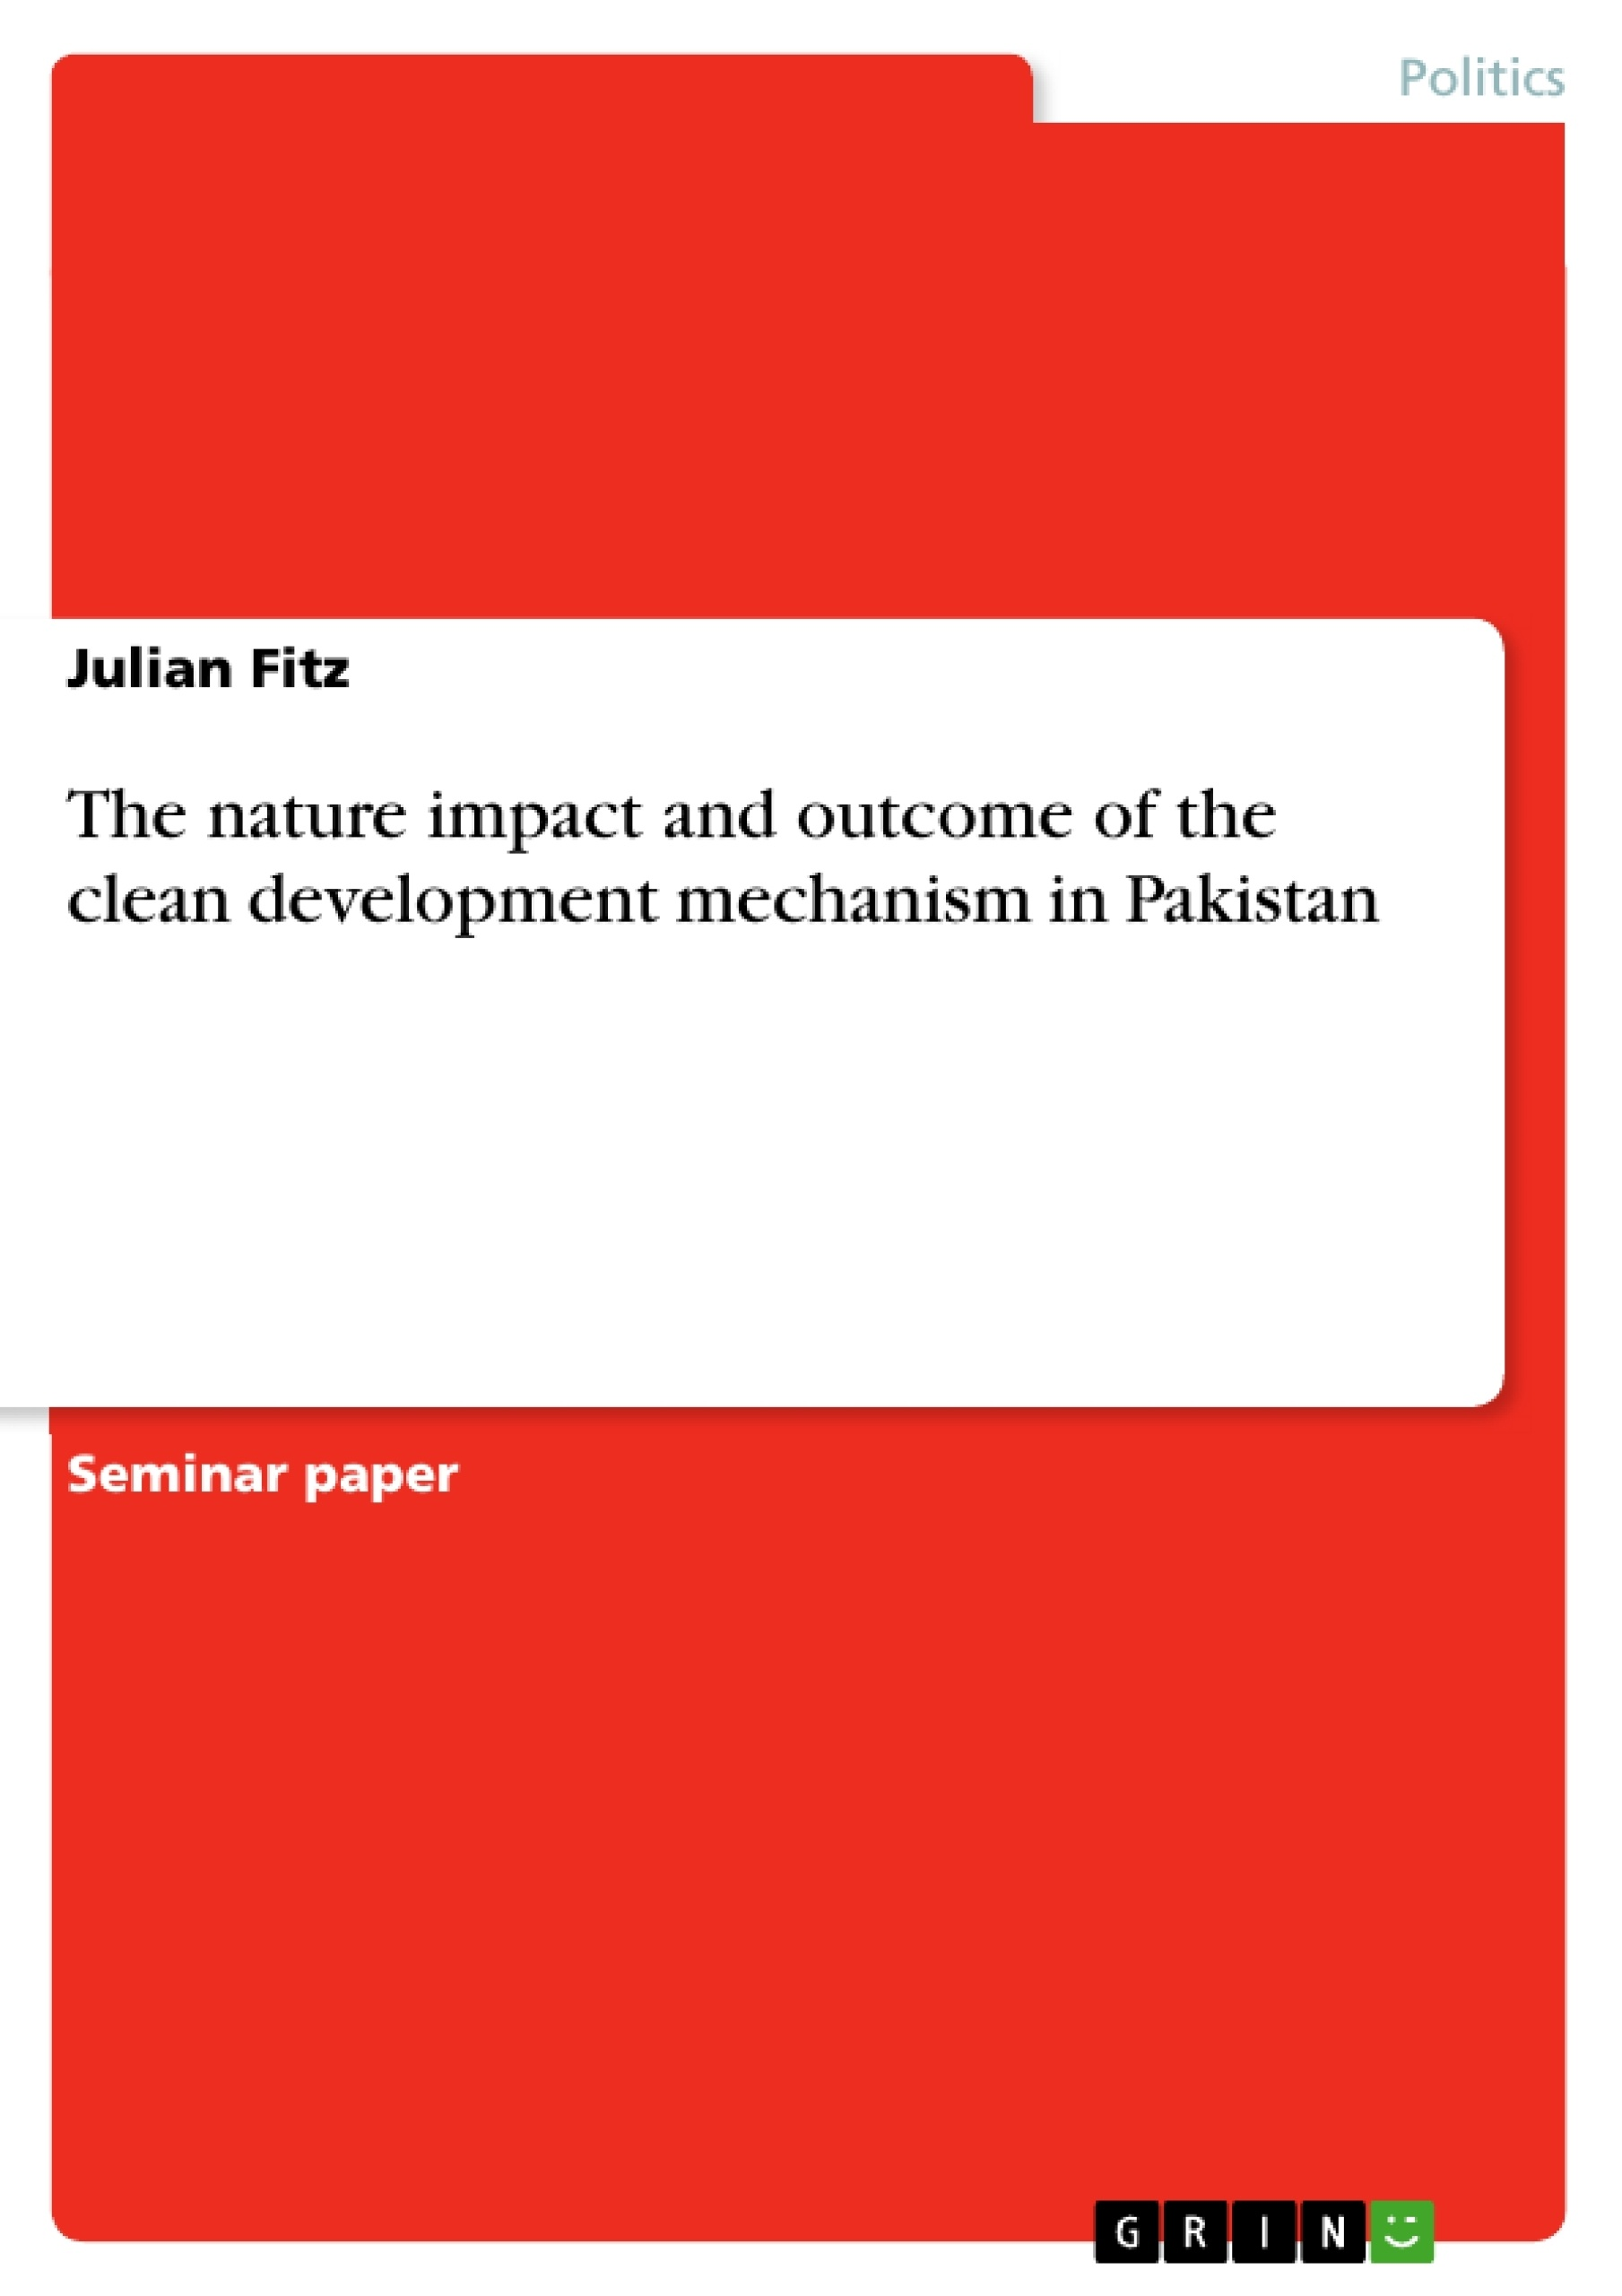 Title: The nature impact and outcome of the clean development mechanism in Pakistan